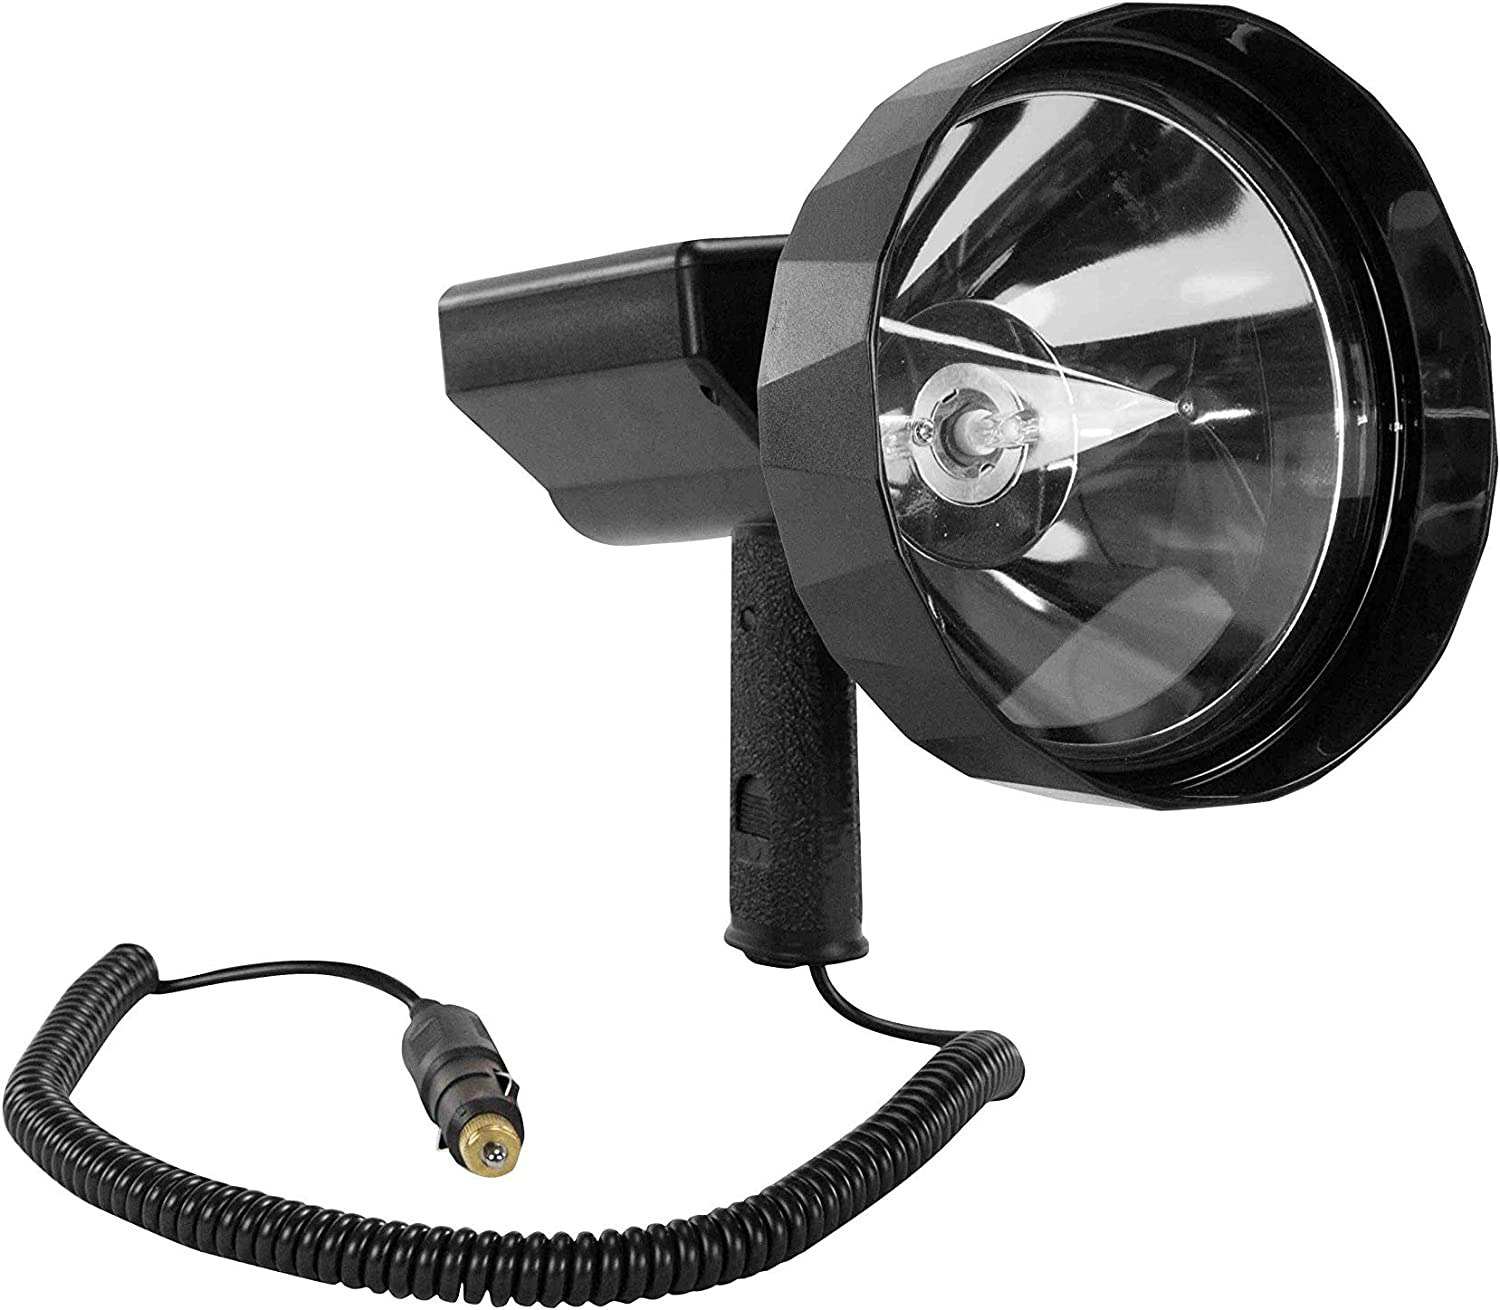 45 Million Candlepower Handheld Spotlight 10 Lens 80 Watt Hid 7200 Lumens Spot Flood Amazon Com